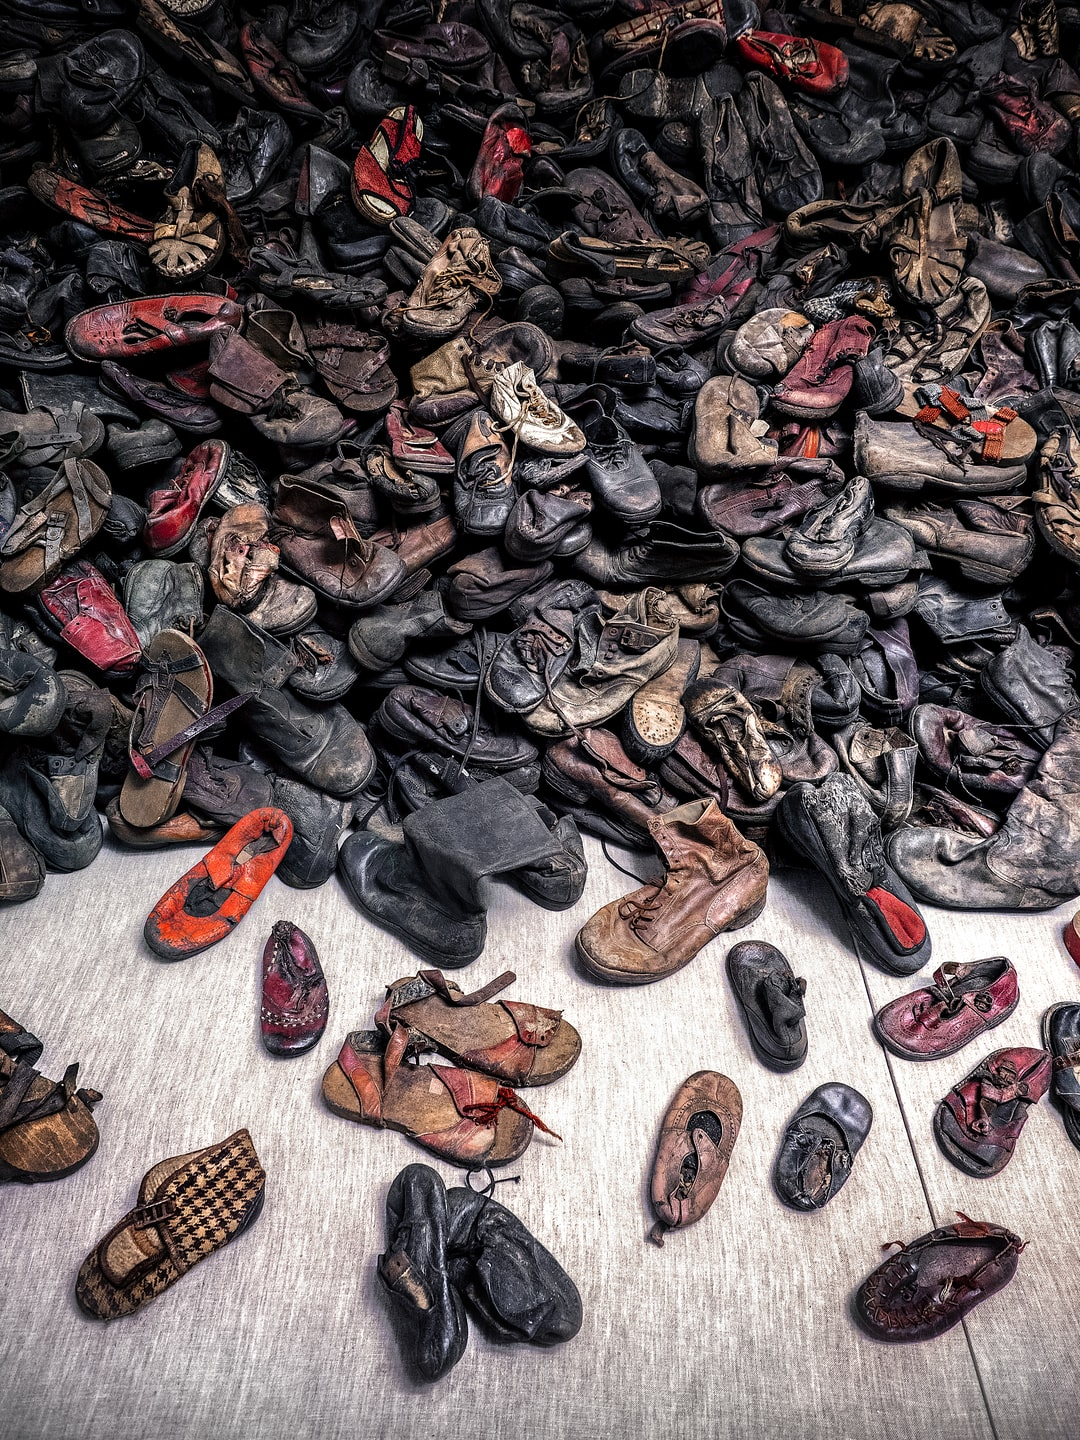 This image was captured at the Auschwitz concentration camp in Oświęcim, Poland. It shows part of a huge pile of children's shoes stolen by the Germans from Jews arriving at the concentration camp, which have been preserved as a museum exhibit.